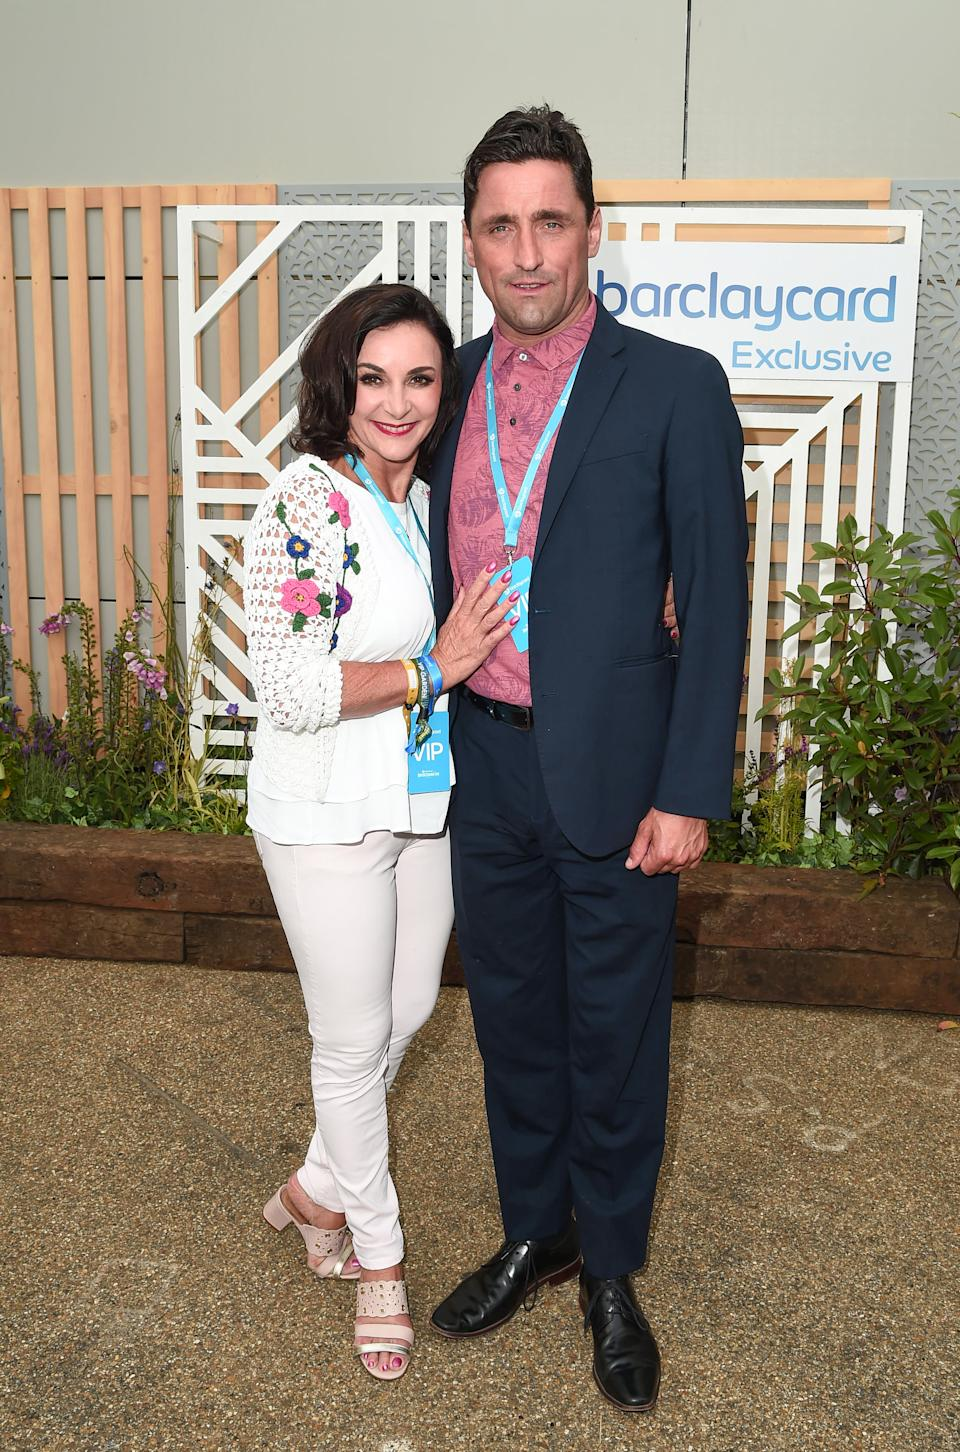 LONDON, ENGLAND - JULY 06:  Shirley Ballas and Daniel Taylor attend the Barclaycard Exclusive Area at Barclaycard Presents British Summer Time Hyde Park at Hyde Park on July 06, 2019 in London, England. (Photo by Eamonn M. McCormack/Getty Images for Barclaycard Exclusive)